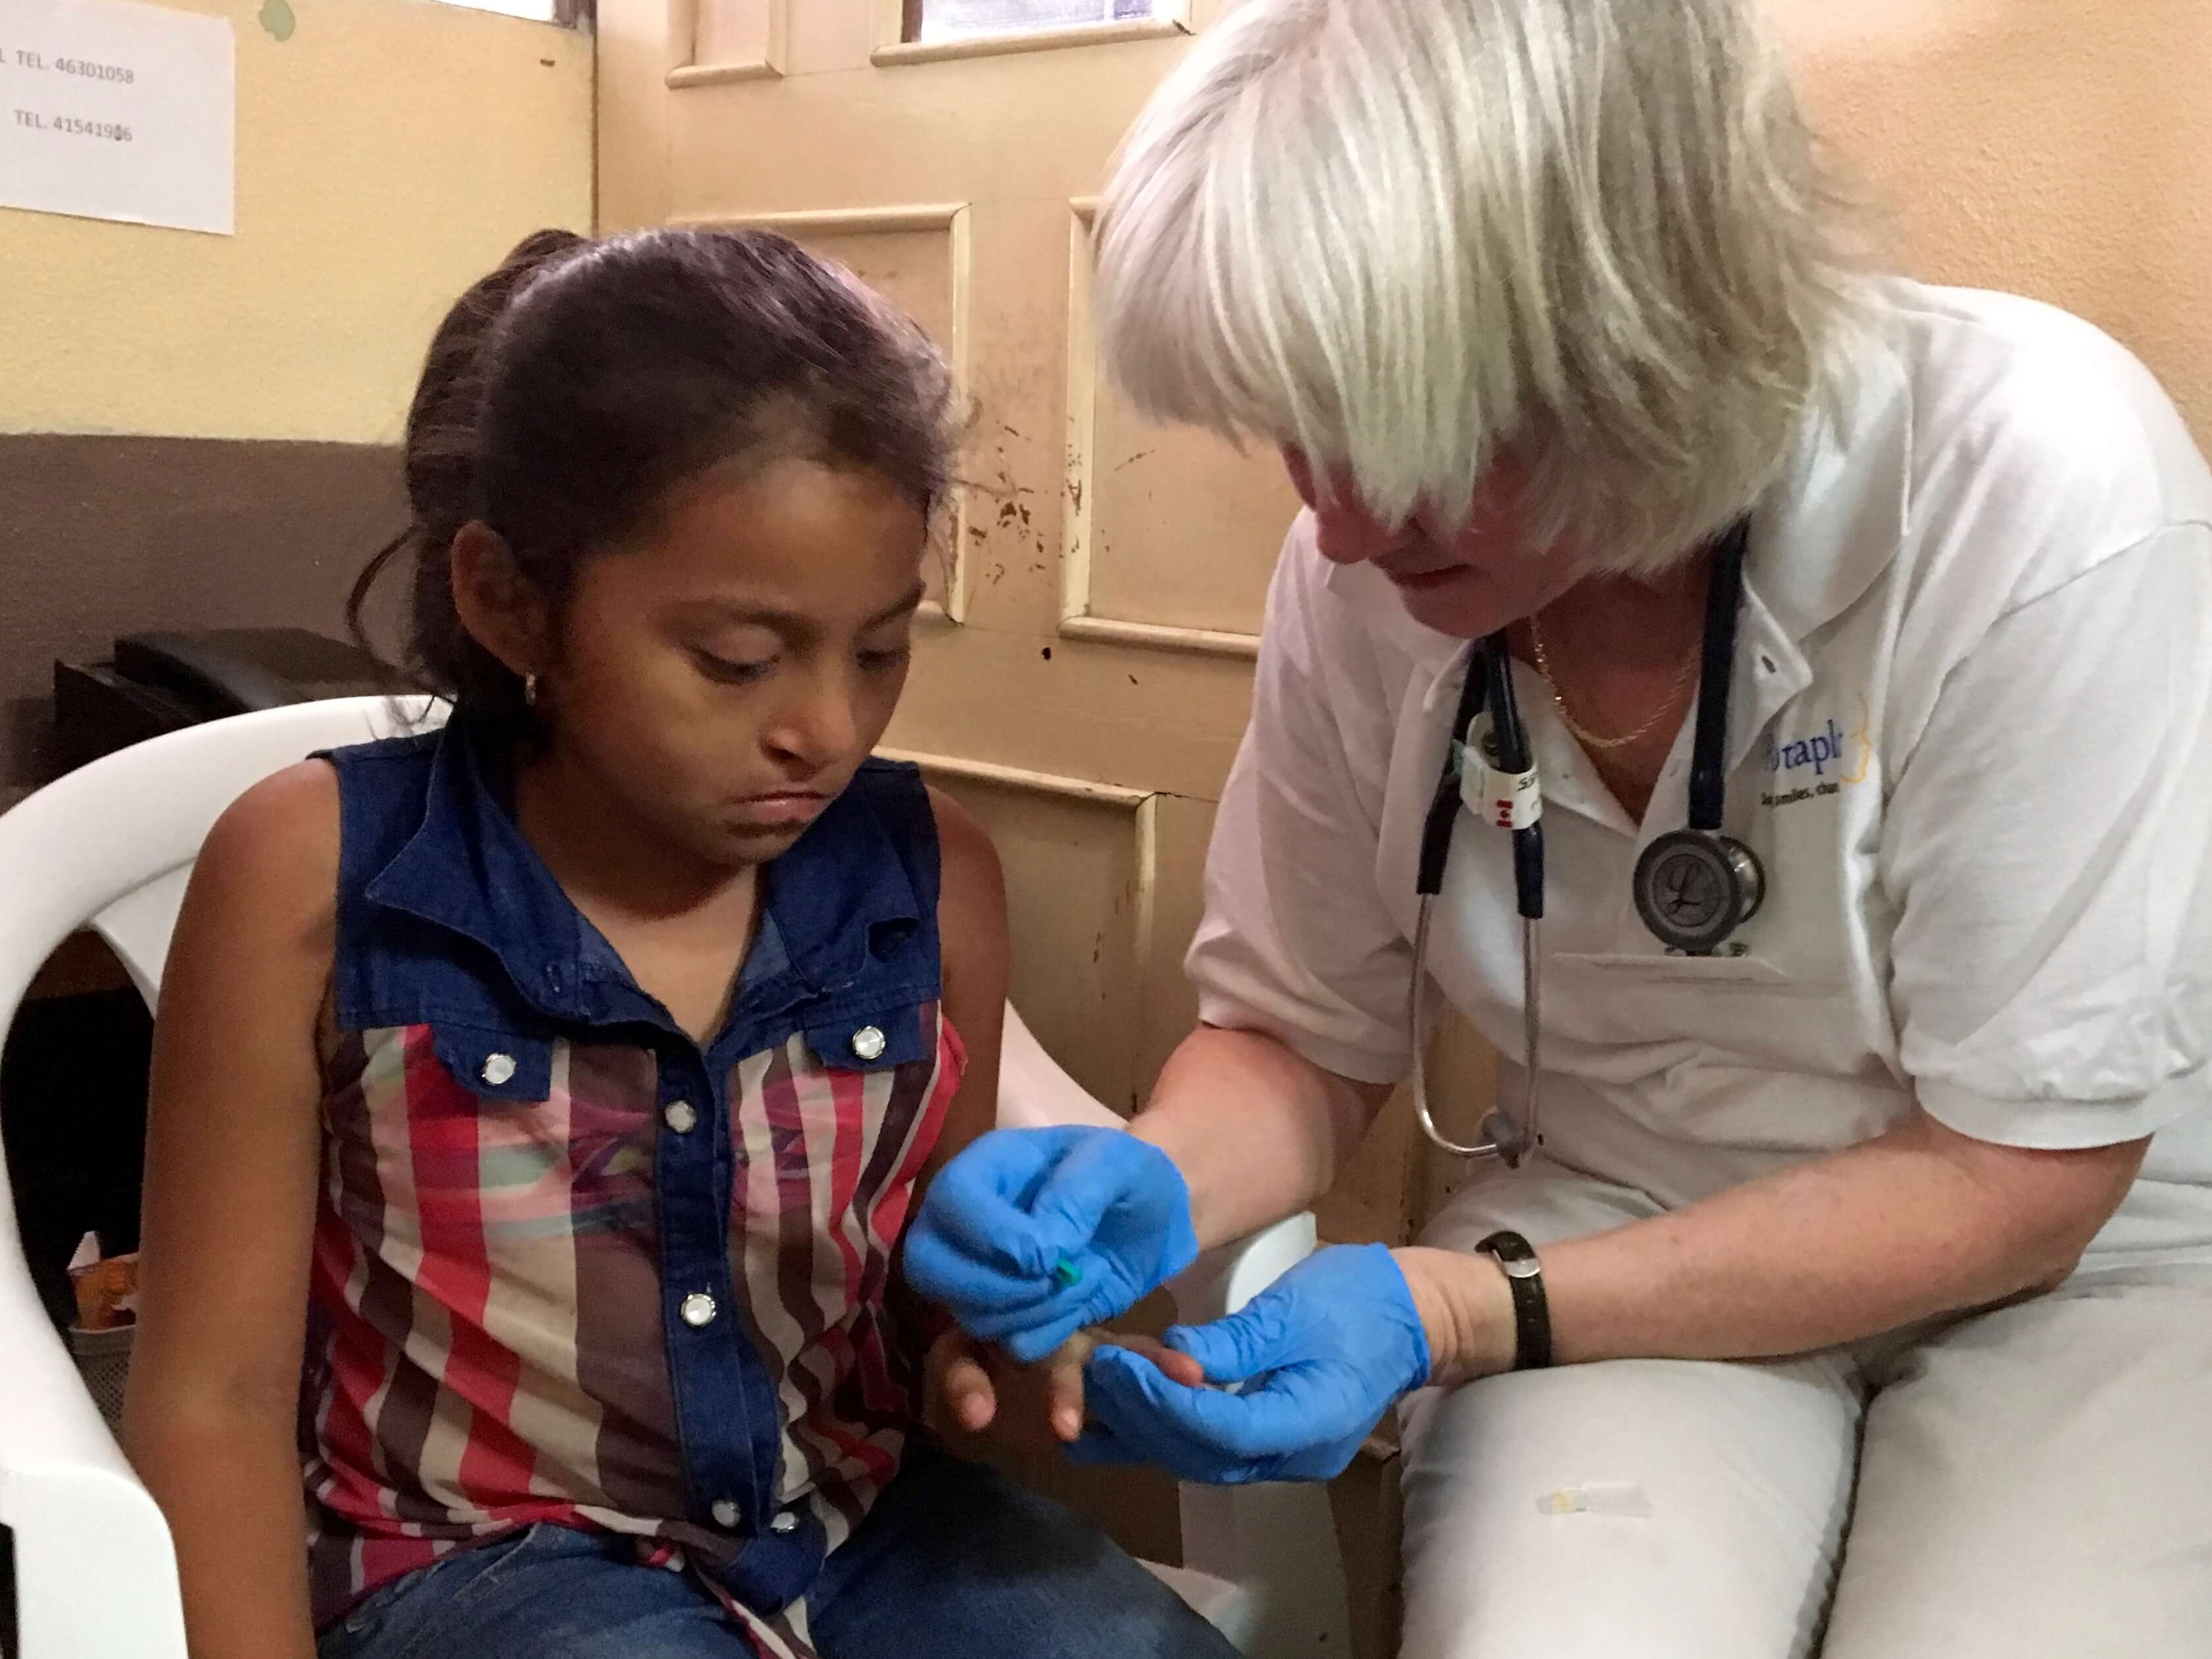 Nurse Ellen Adams checks a potential patient's vital signs and draws blood for analysis.